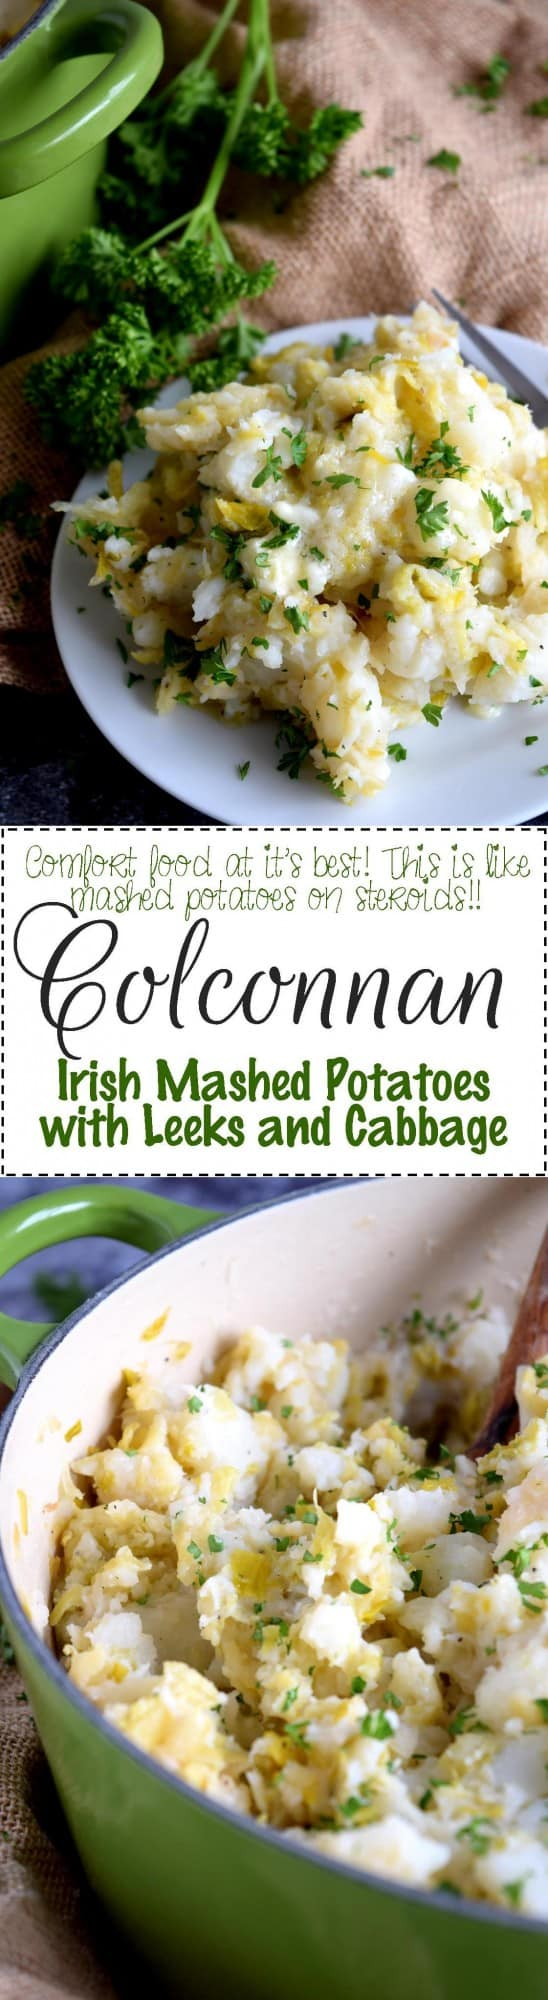 Colconnan - Irish Mashed Potatoes with Leeks and Cabbage - Lord